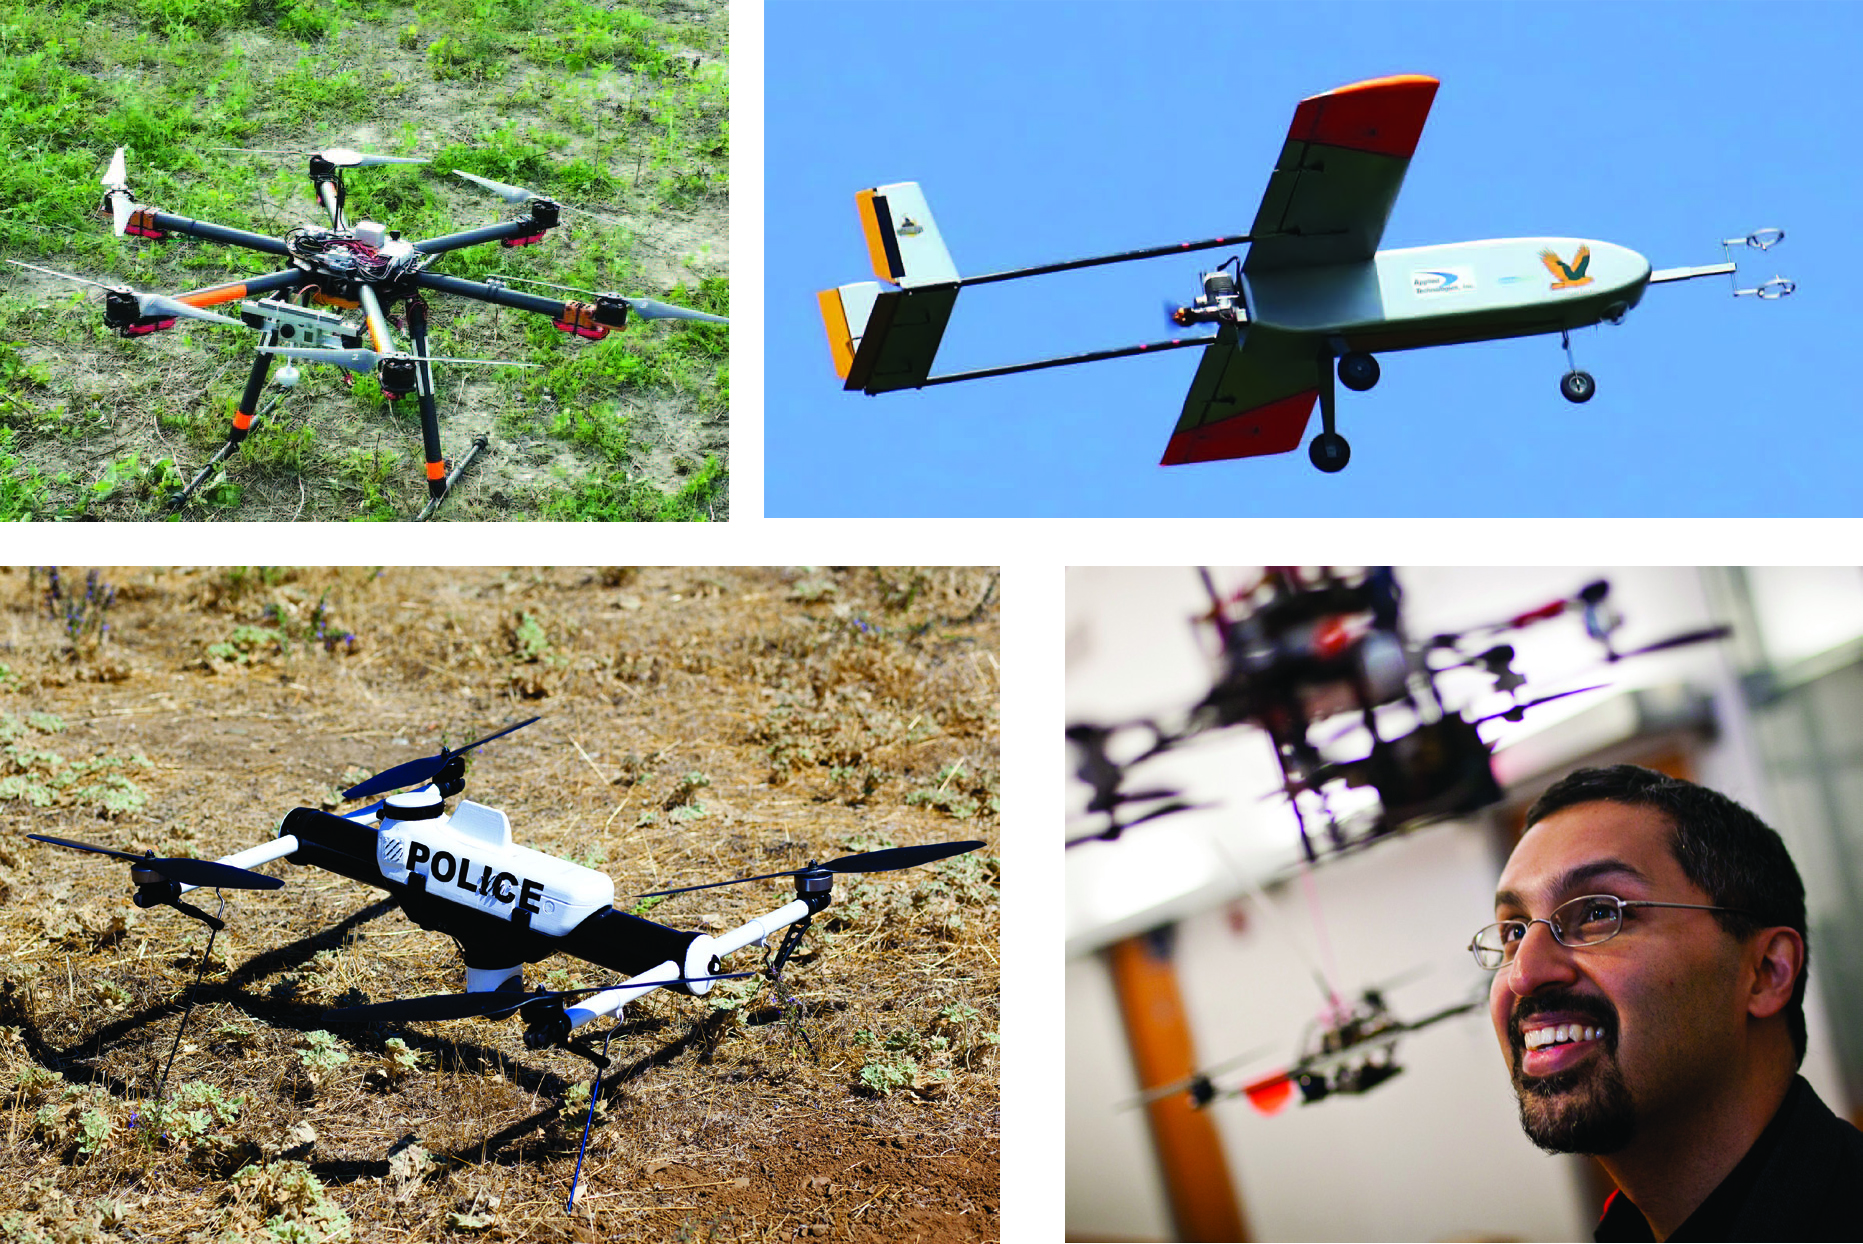 Special Report: UAS in the NAS